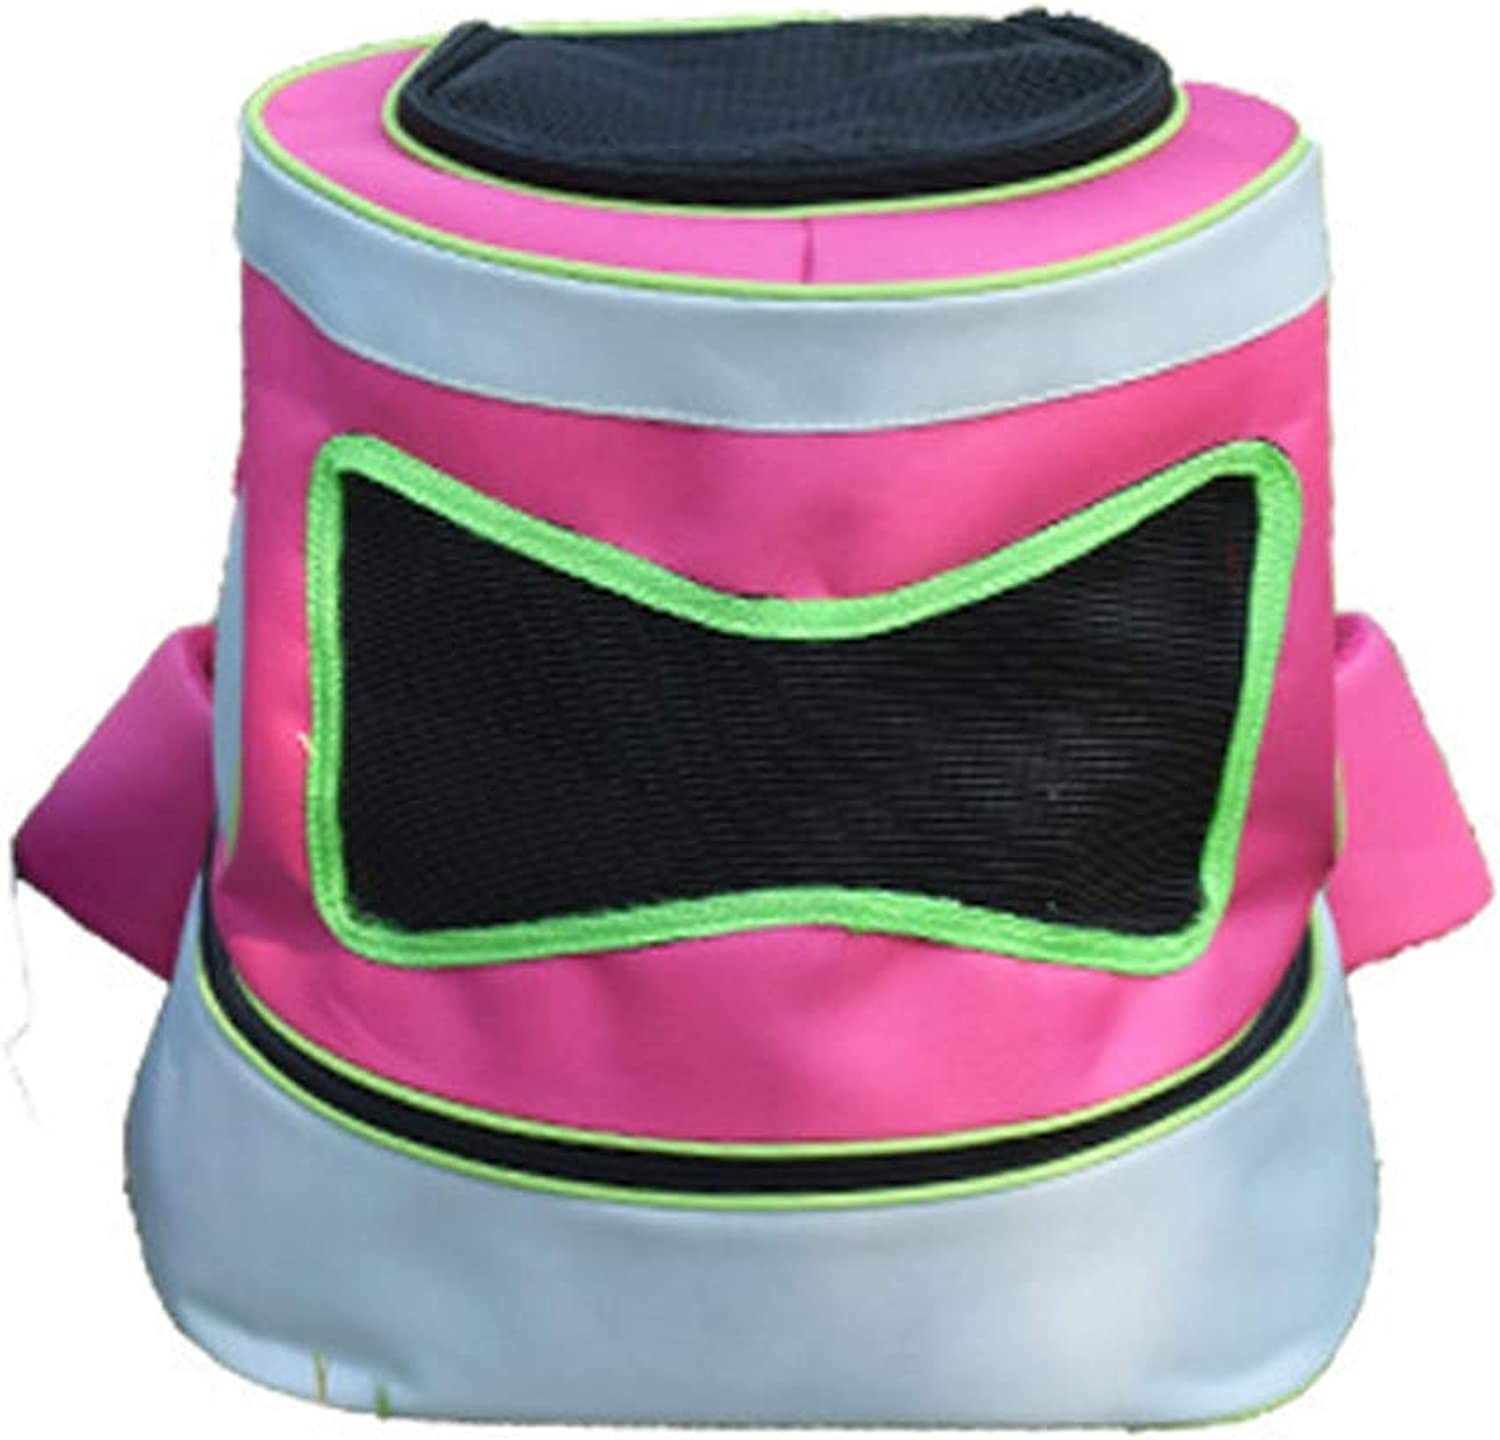 Pet Bag Lightweight Fabric Mesh Breathable Handsfree Travel Camping Comfortable and Portable Folding Dog Cat Pet Bag,Pink,S